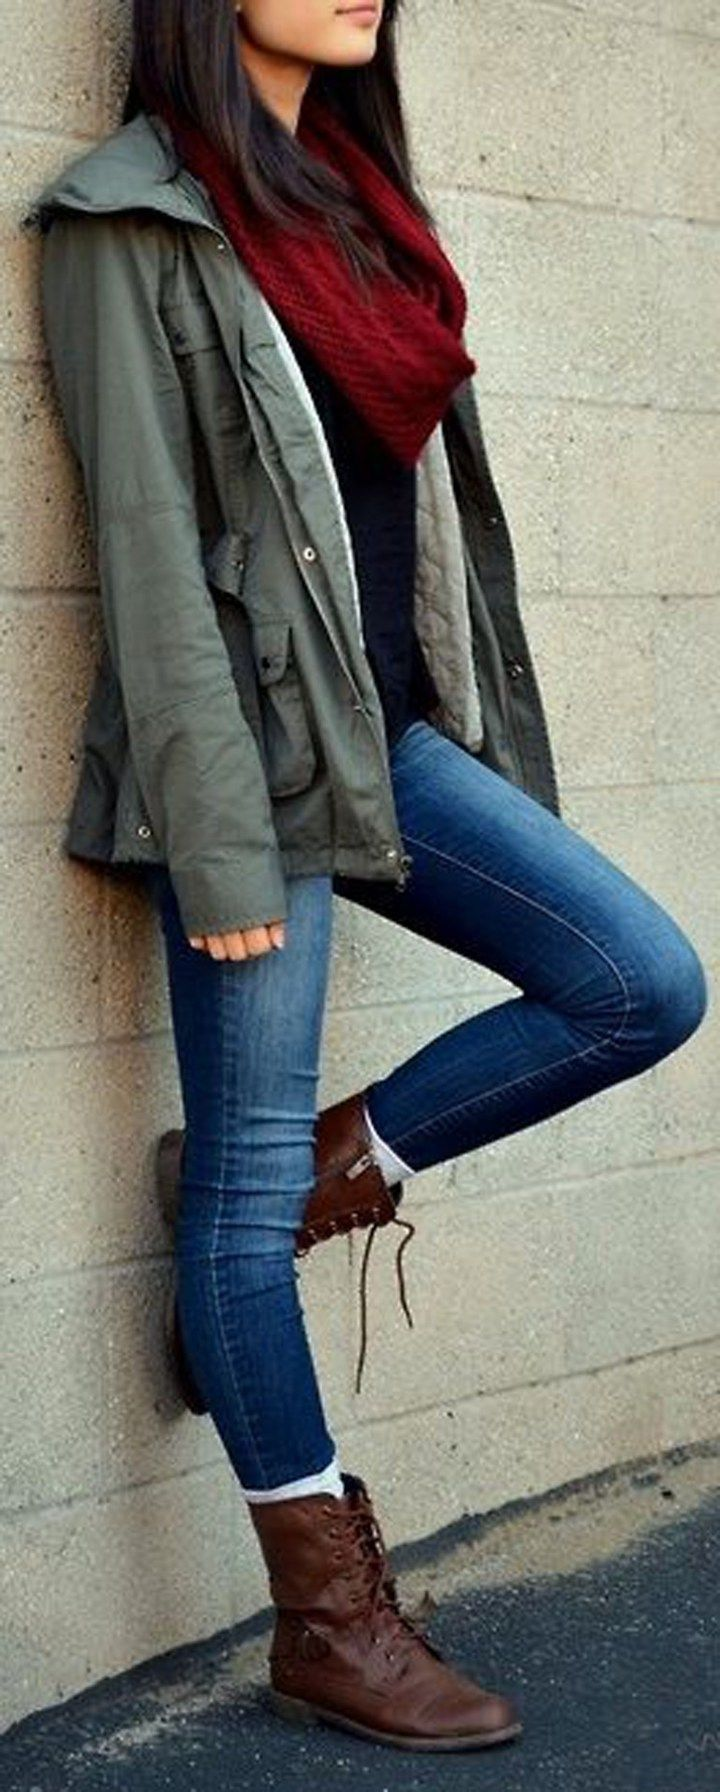 Chic casual winter outfits ideas for teen girls for college school with boat